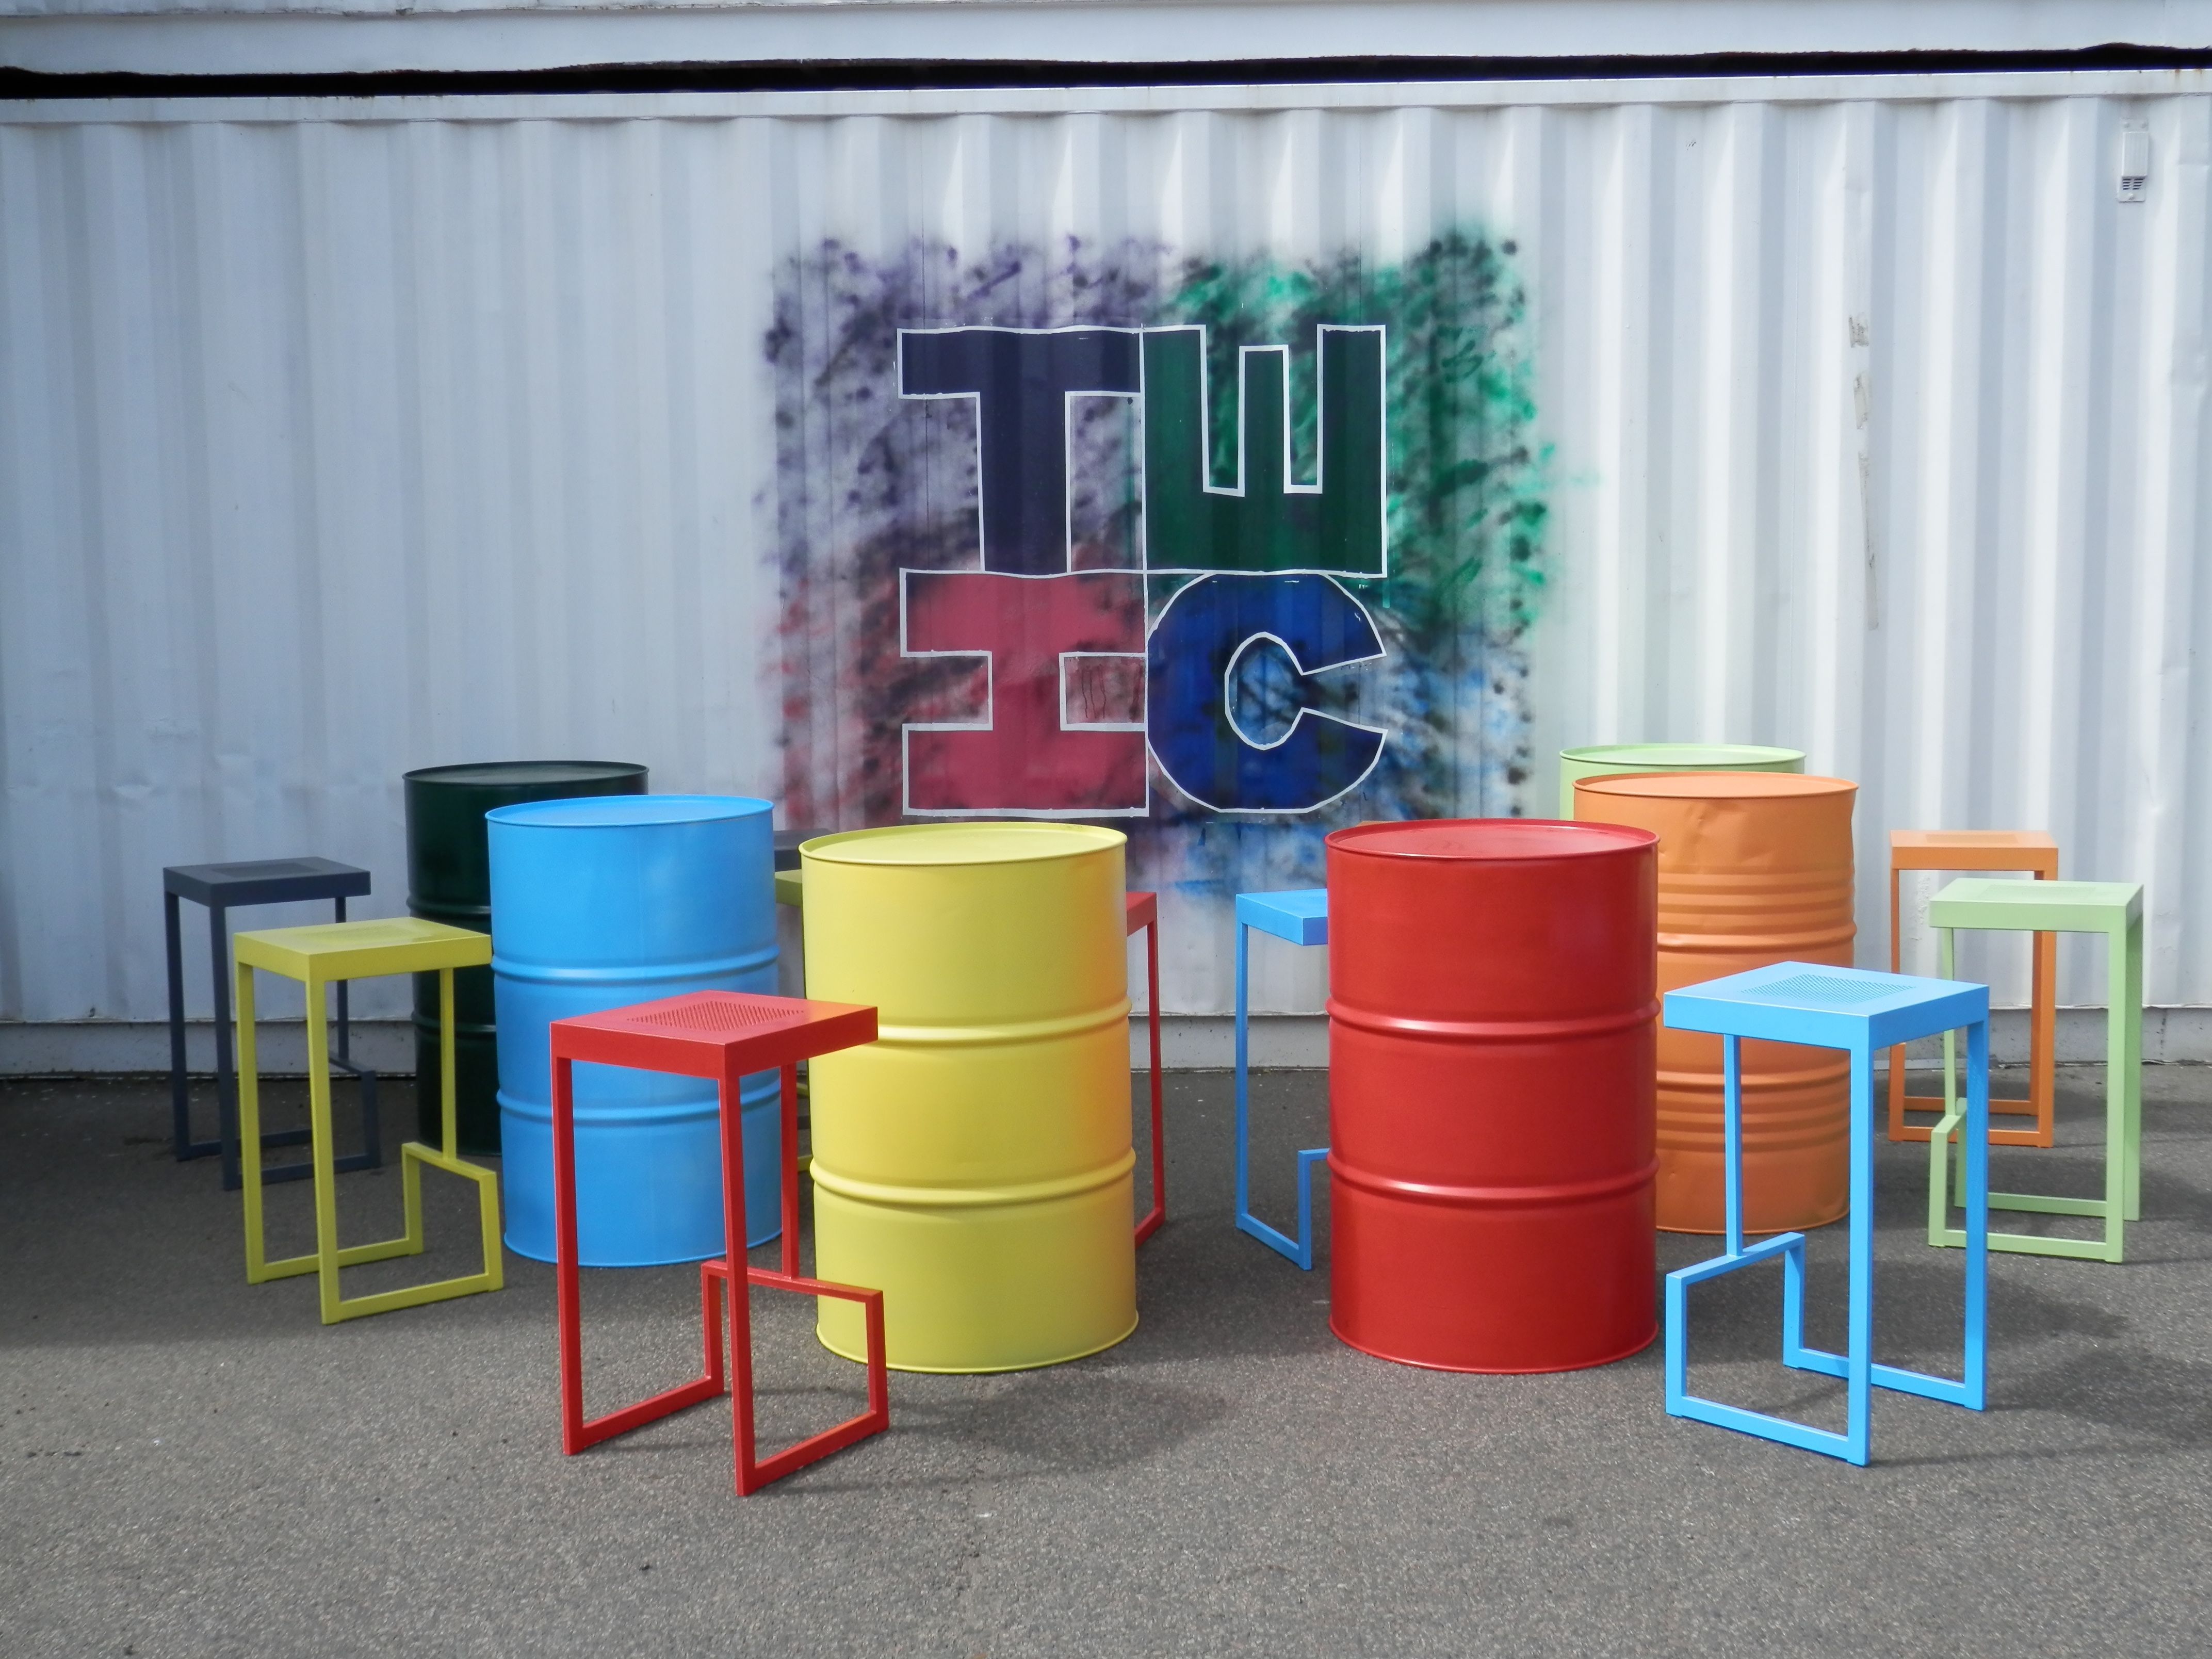 Oil drum tables and chairs. & Oil drum tables and chairs. | Everything | Pinterest | Drum table ... islam-shia.org